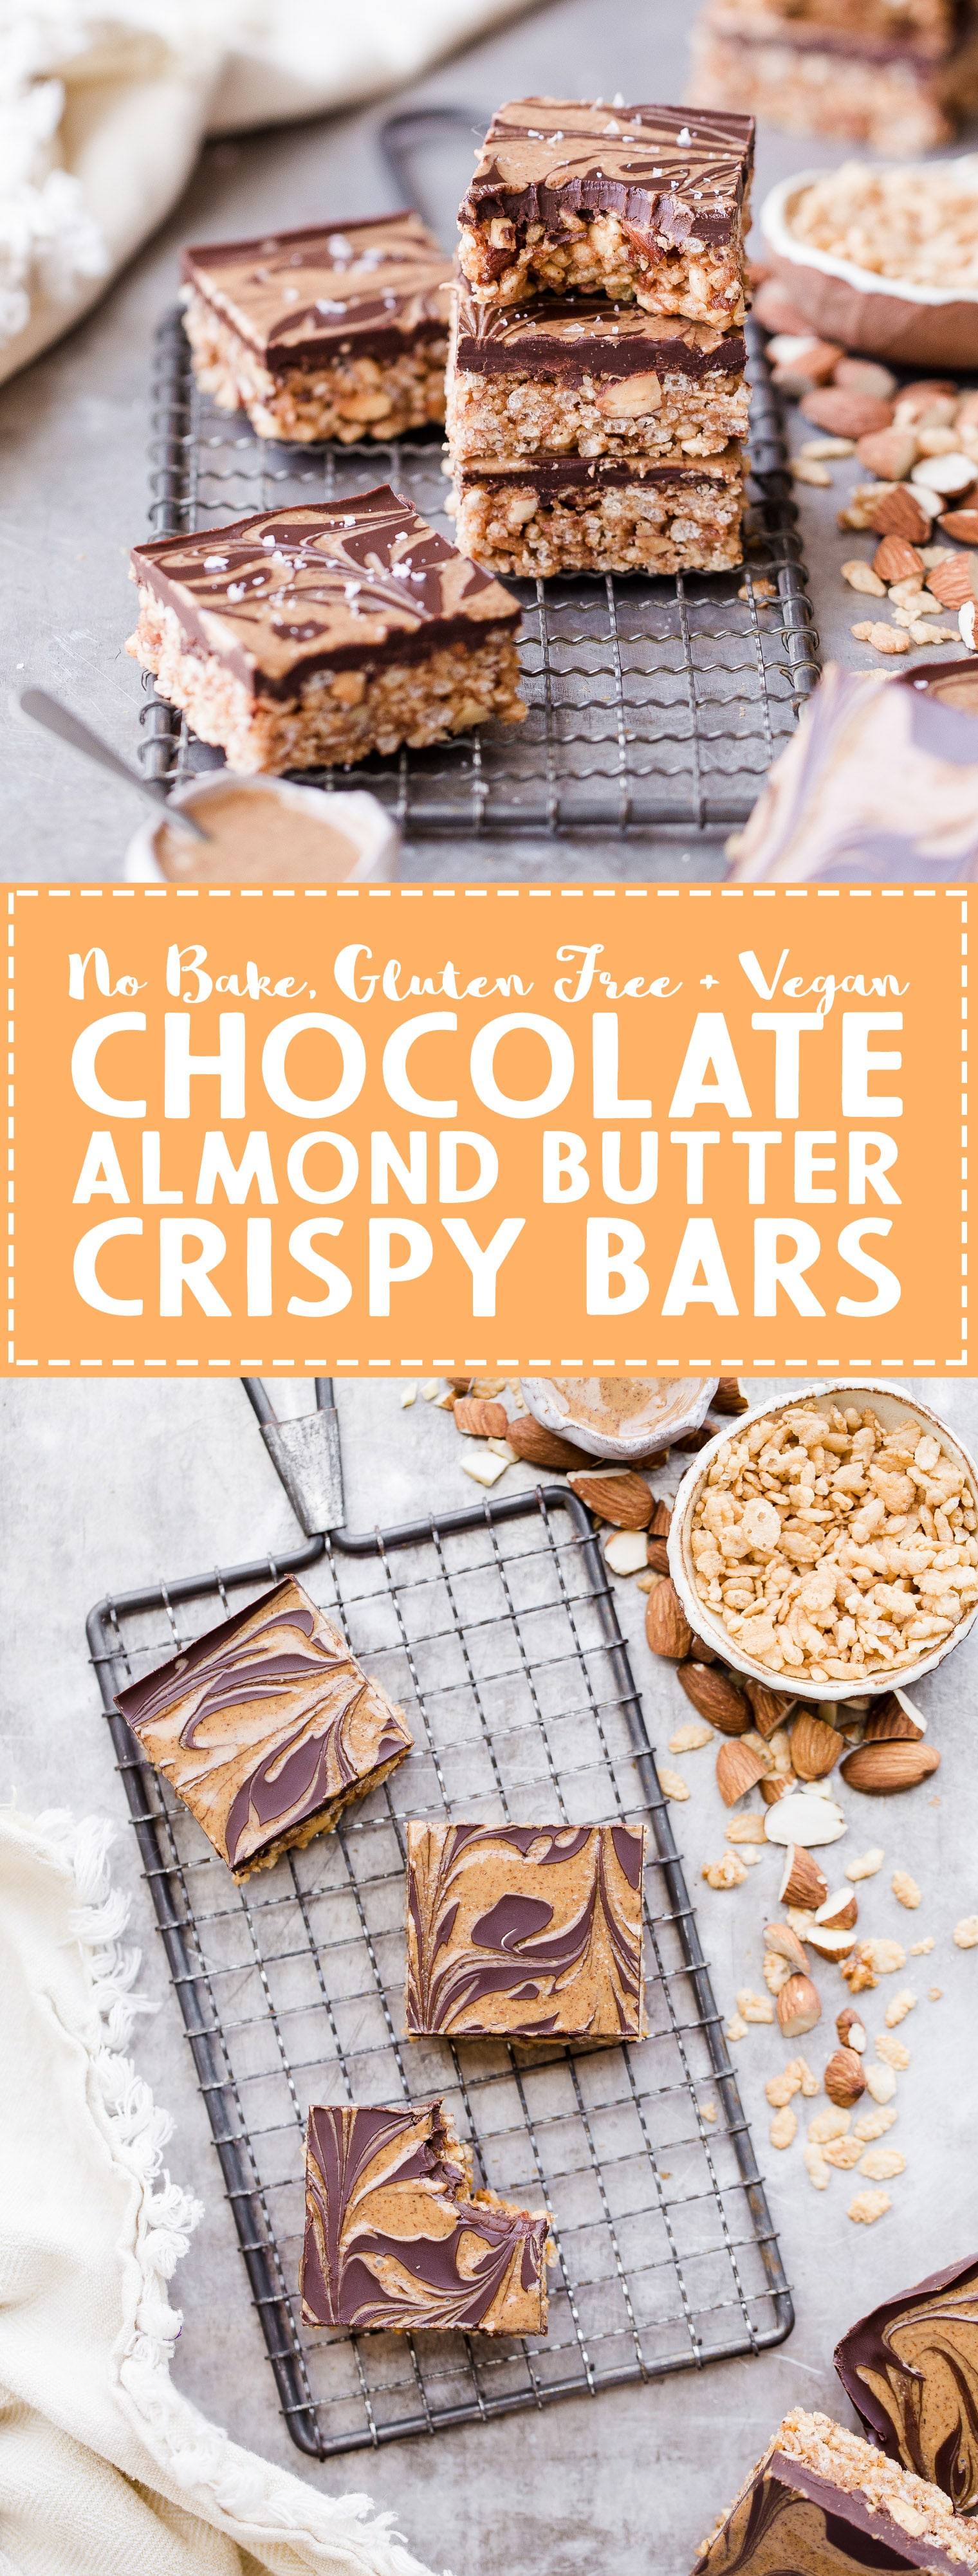 These Chocolate Almond Butter Crispy Bars Are Crunchy, Rich, And